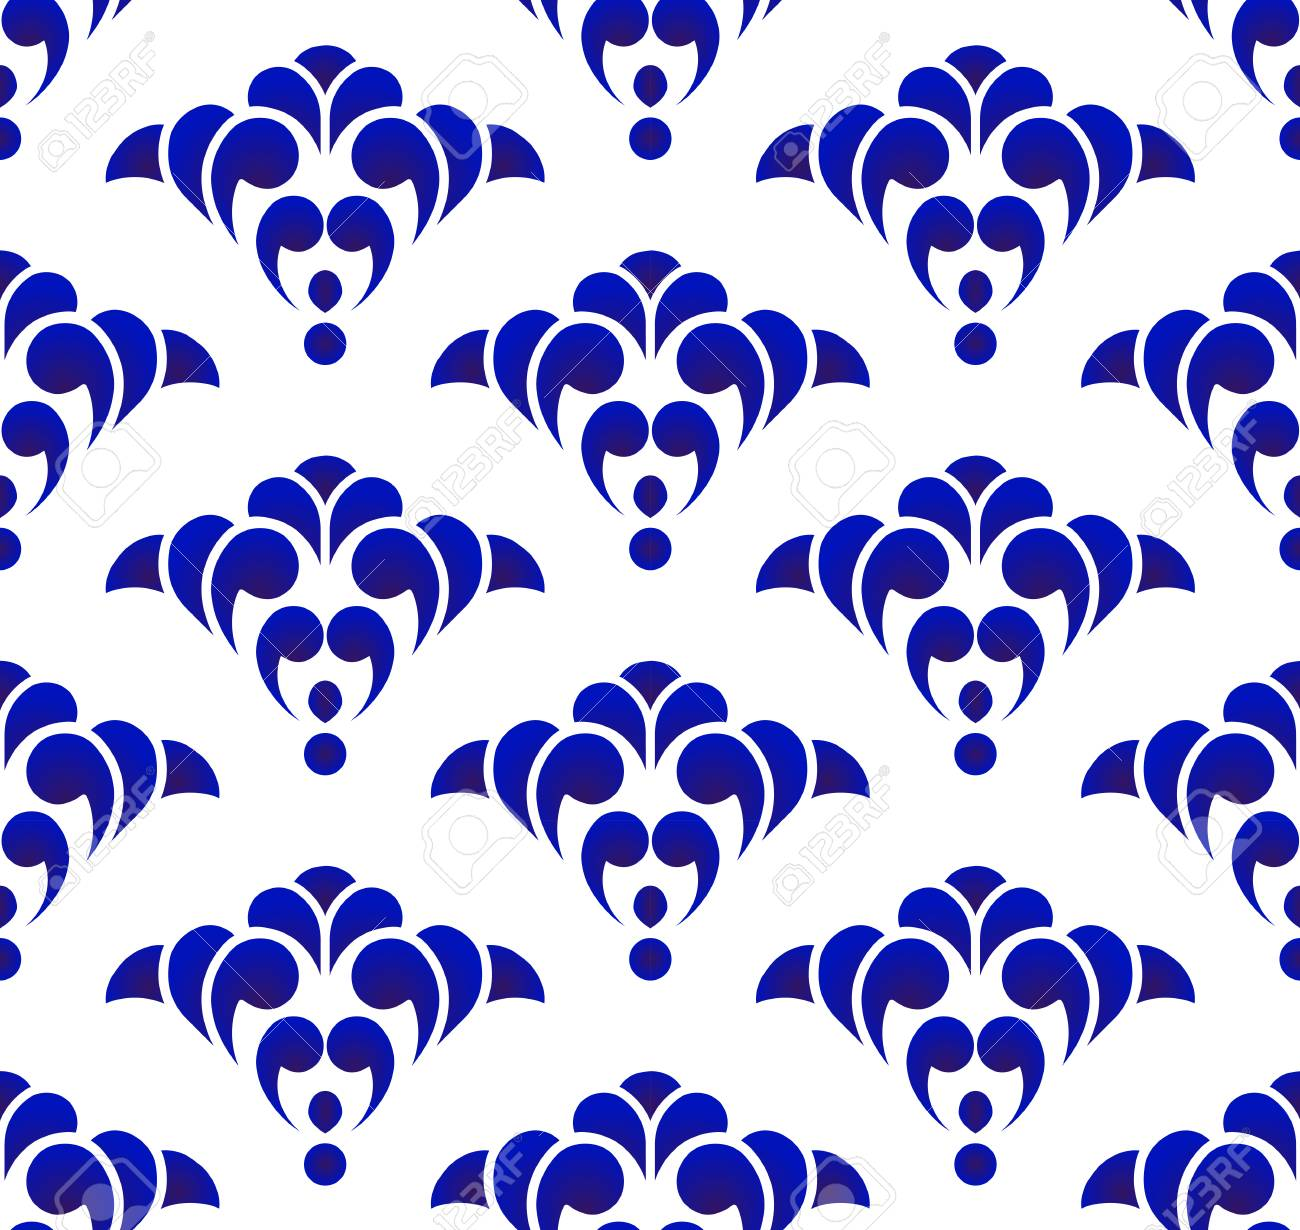 Chinese Pattern Ceramic Blue And White Modern Background Design Royalty Free Cliparts Vectors And Stock Illustration Image 119952984